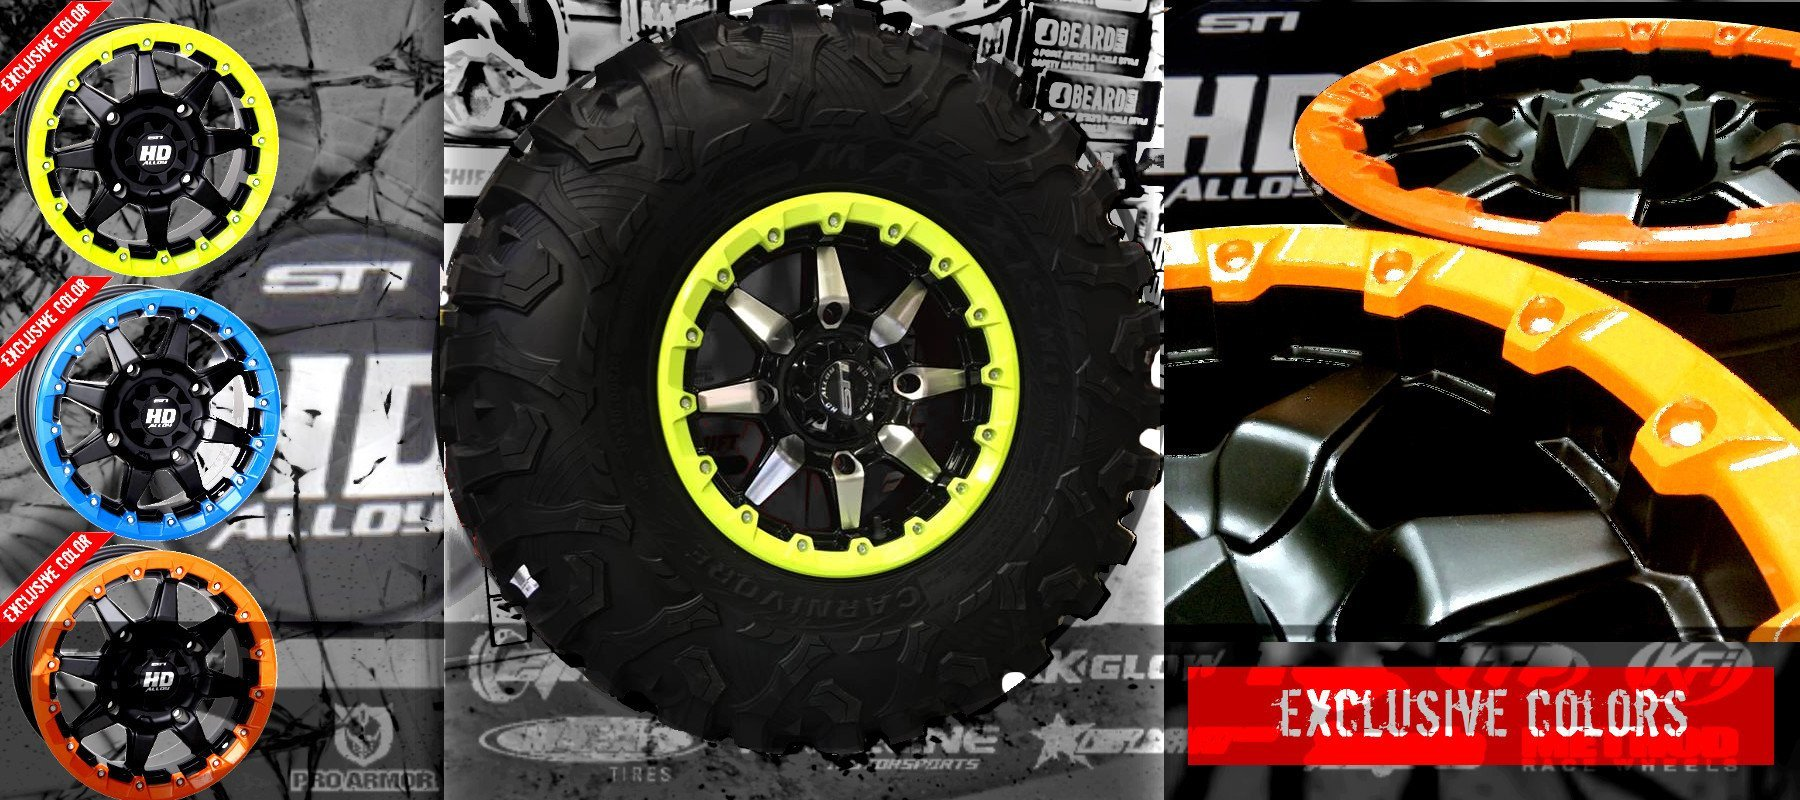 STI WHEELS FOR POLARIS RZR SIDE by Side UTV stuff parts accessories